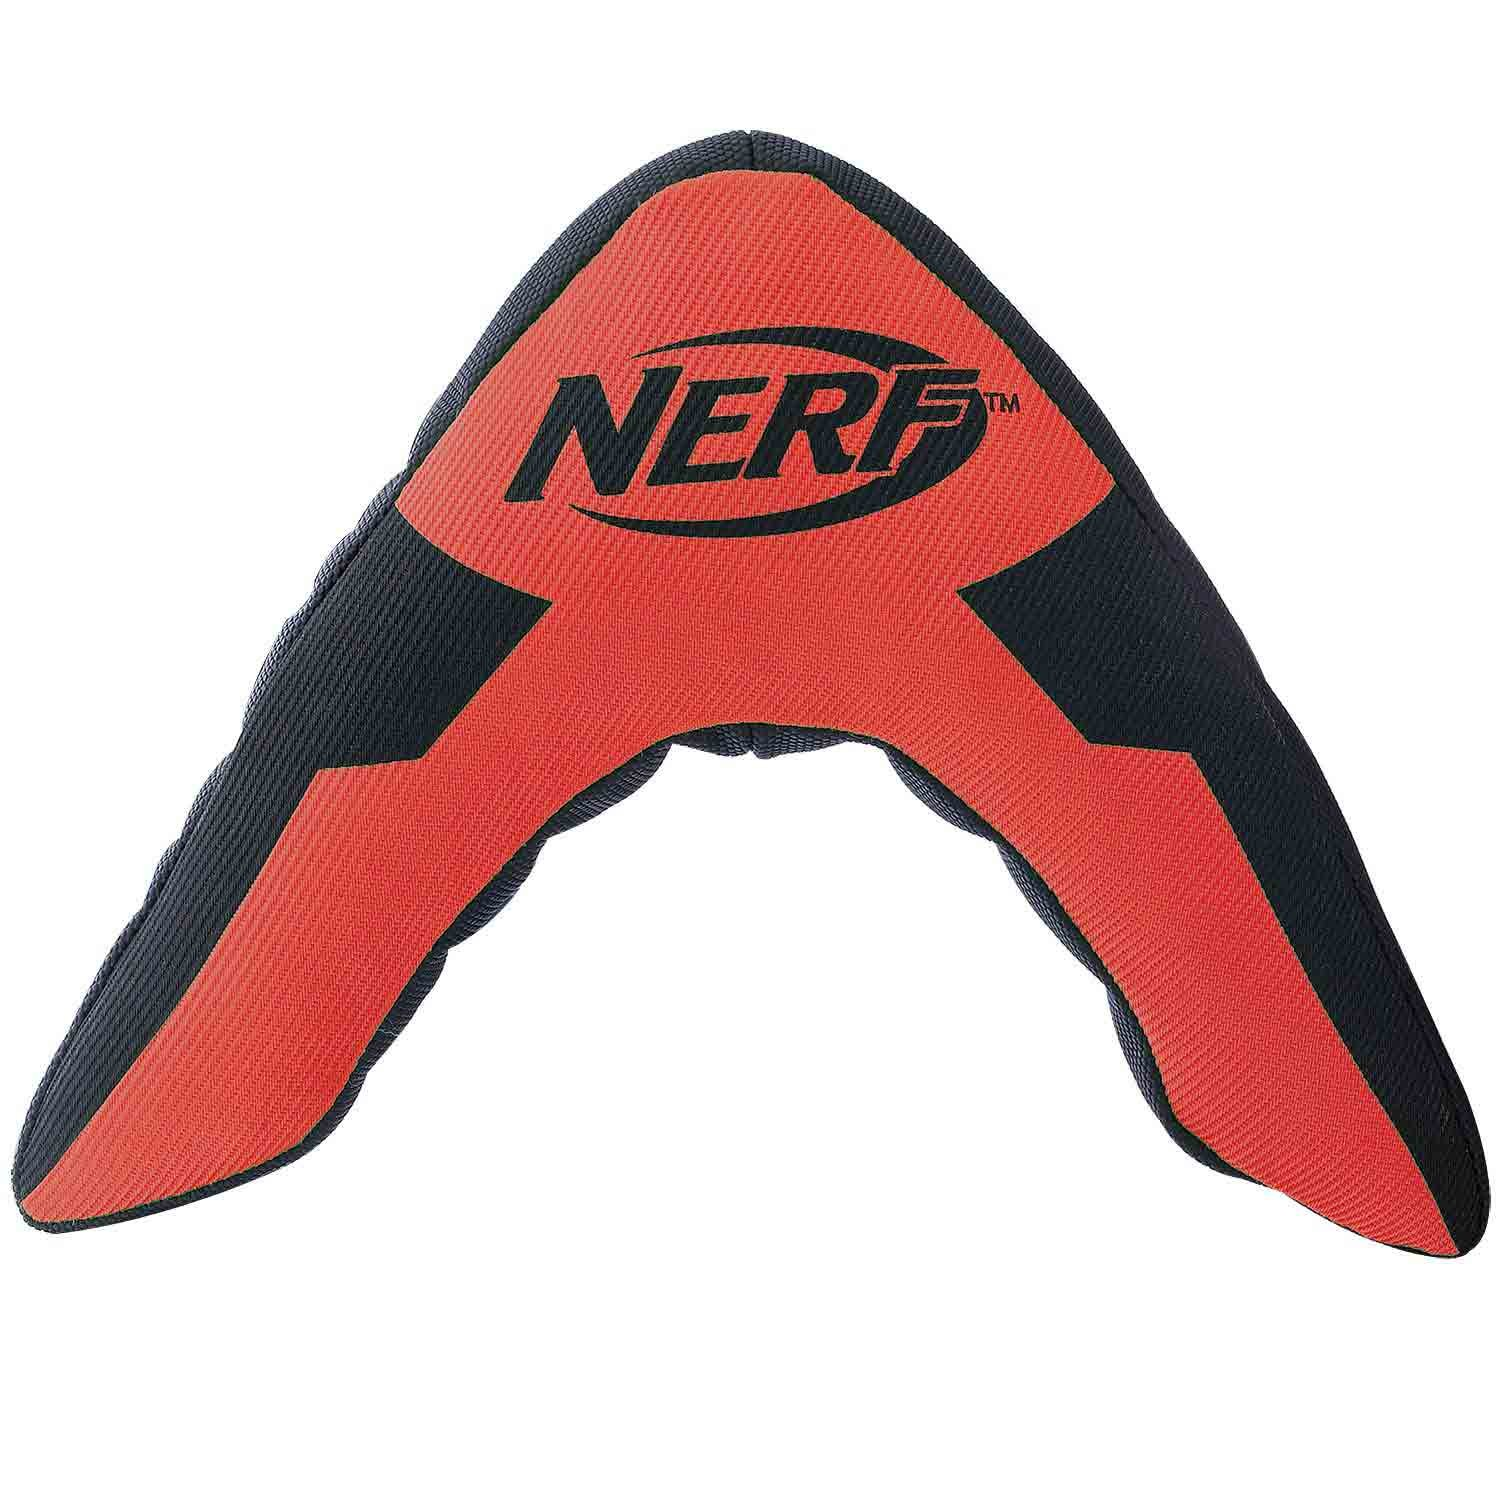 Nerf Dog Trackshot Boomerang Plush Squeaker Dog Toy, Medium/Large, Red